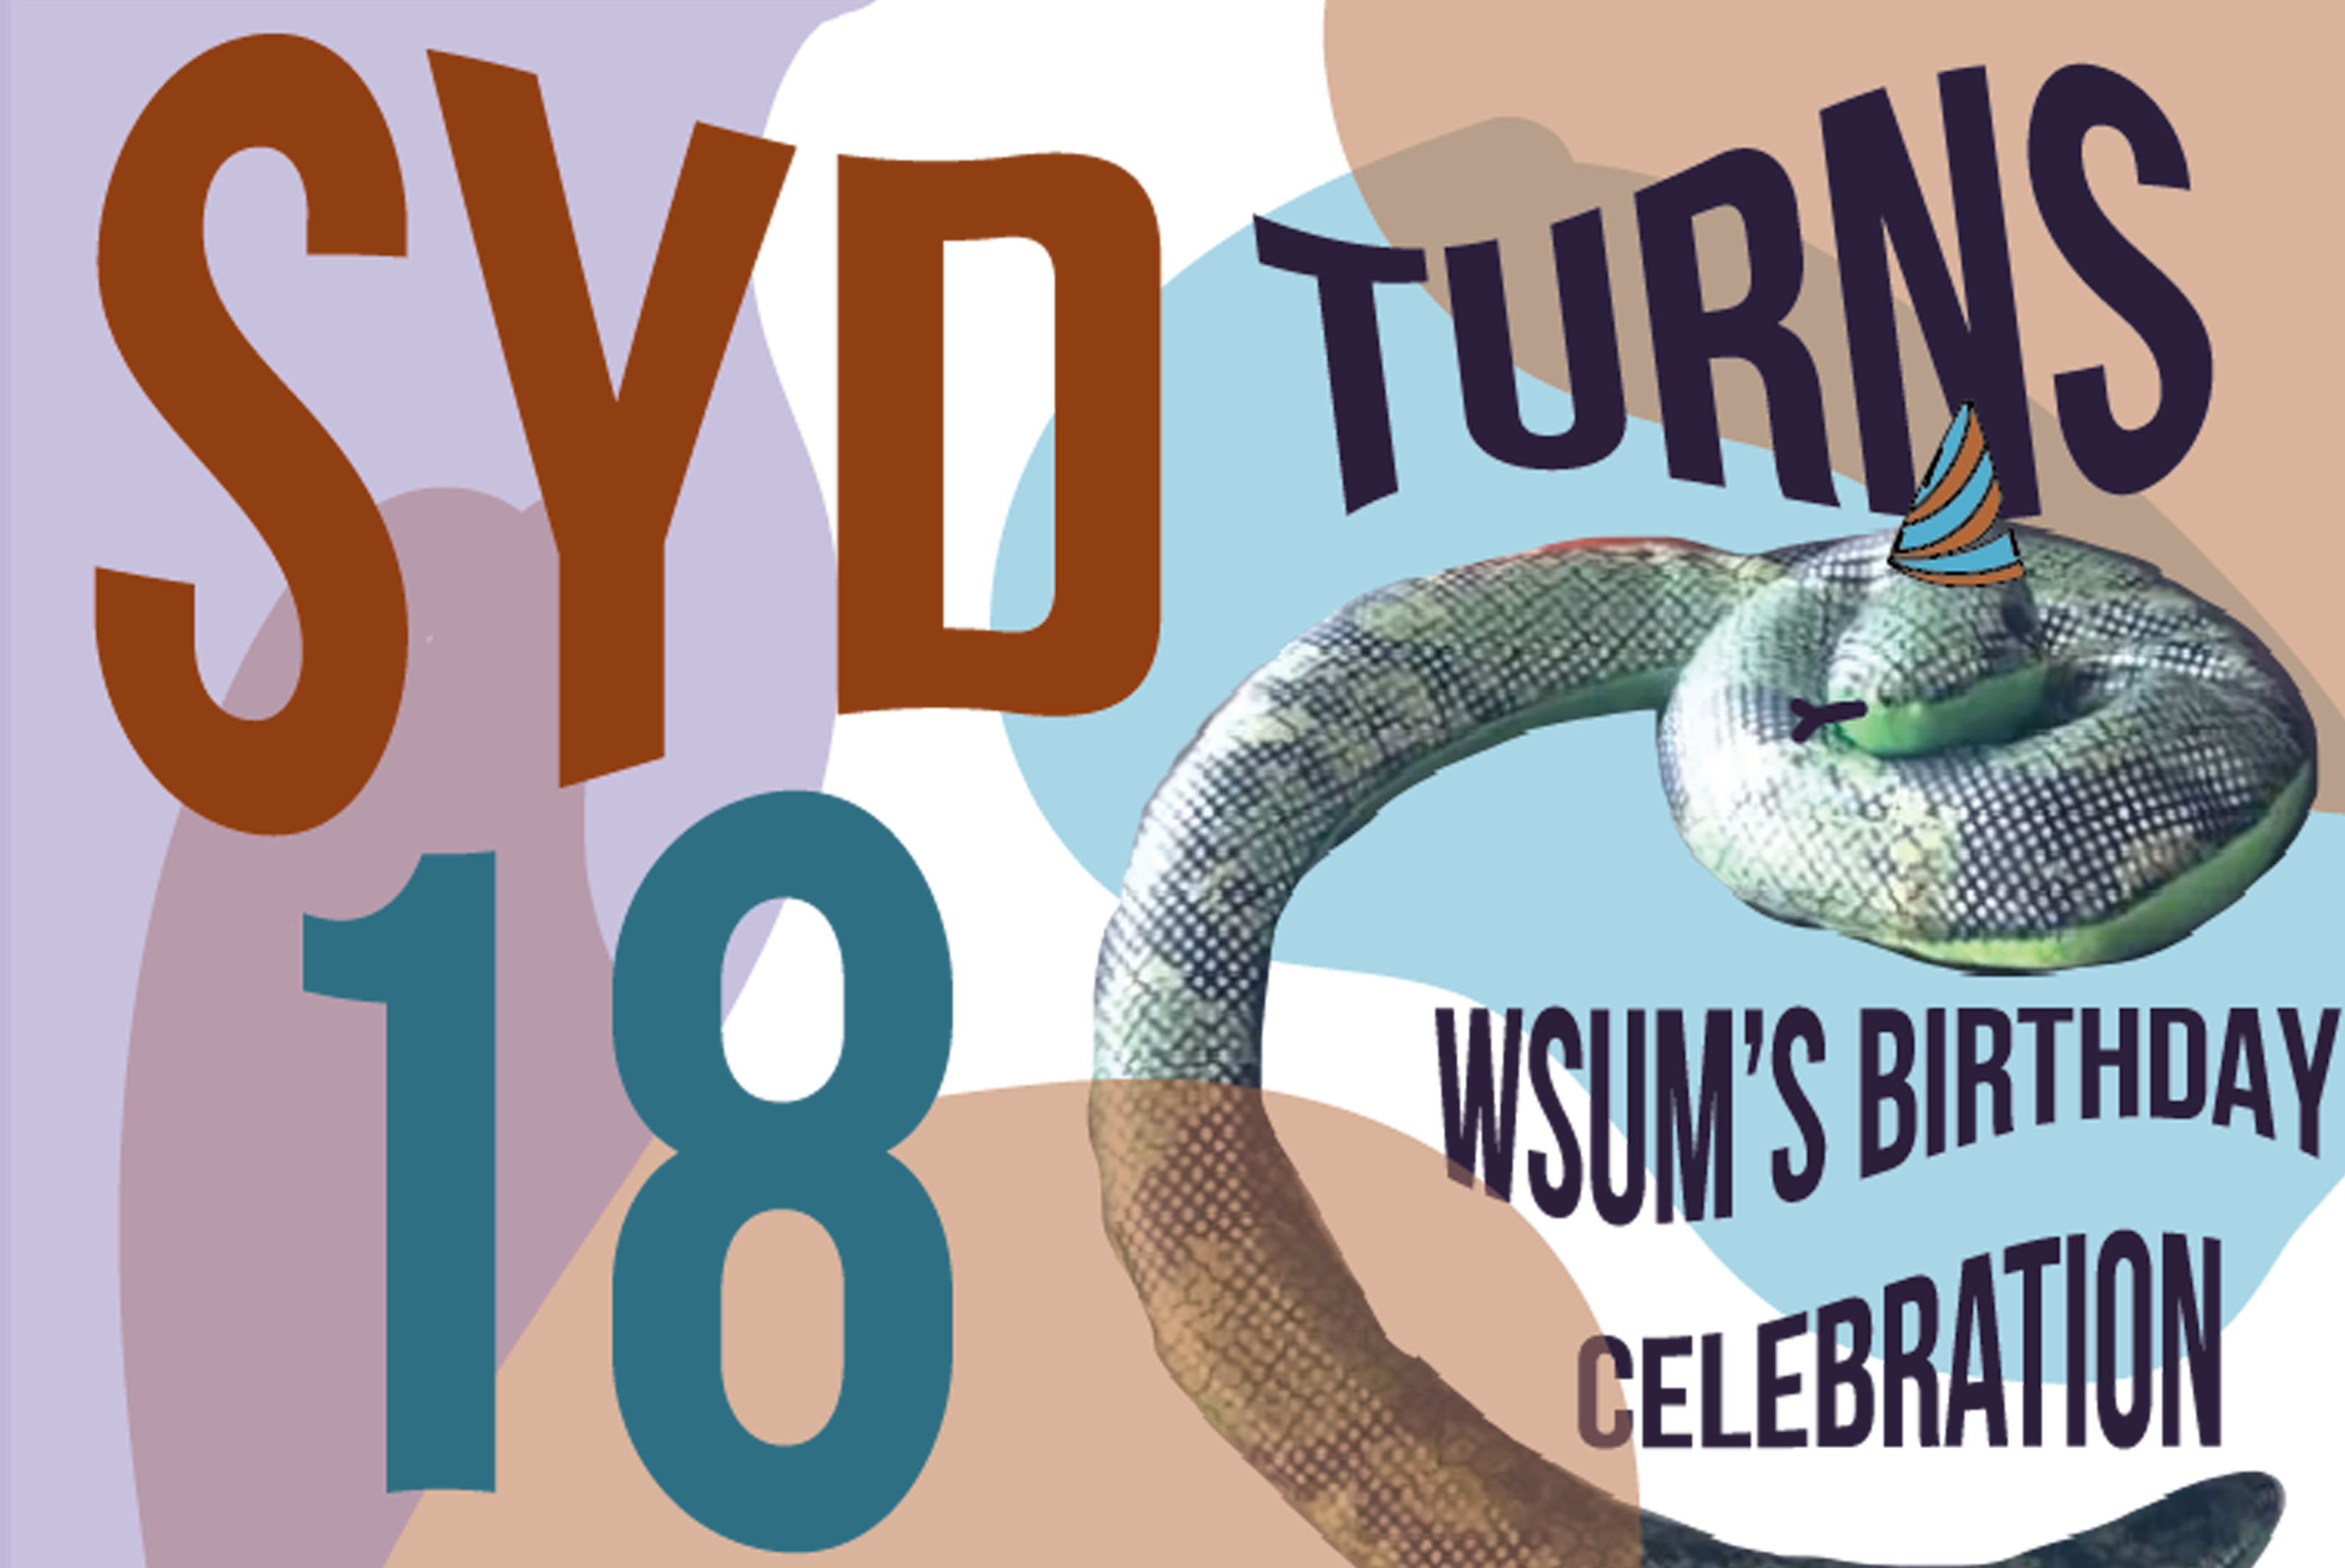 WSUM's 18th Birthday Celebration